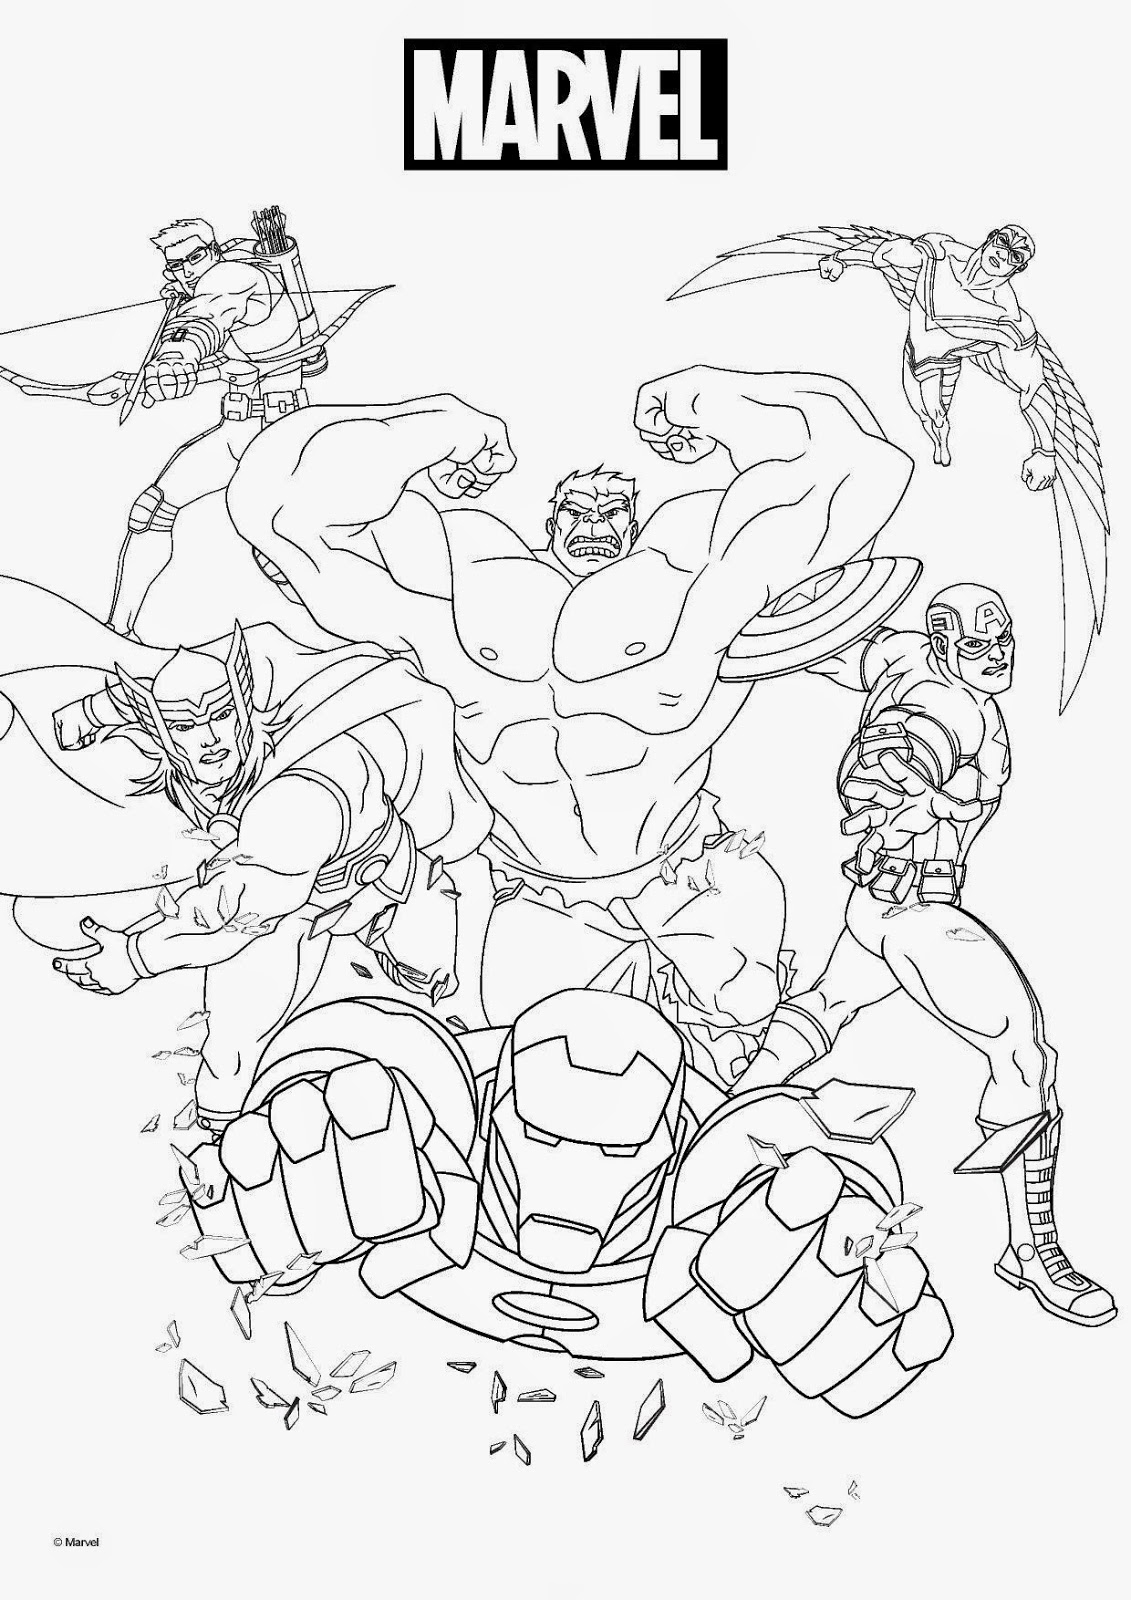 marvel coloring pictures marvel superhero iron man 3 flying and runnning colouring pictures marvel coloring